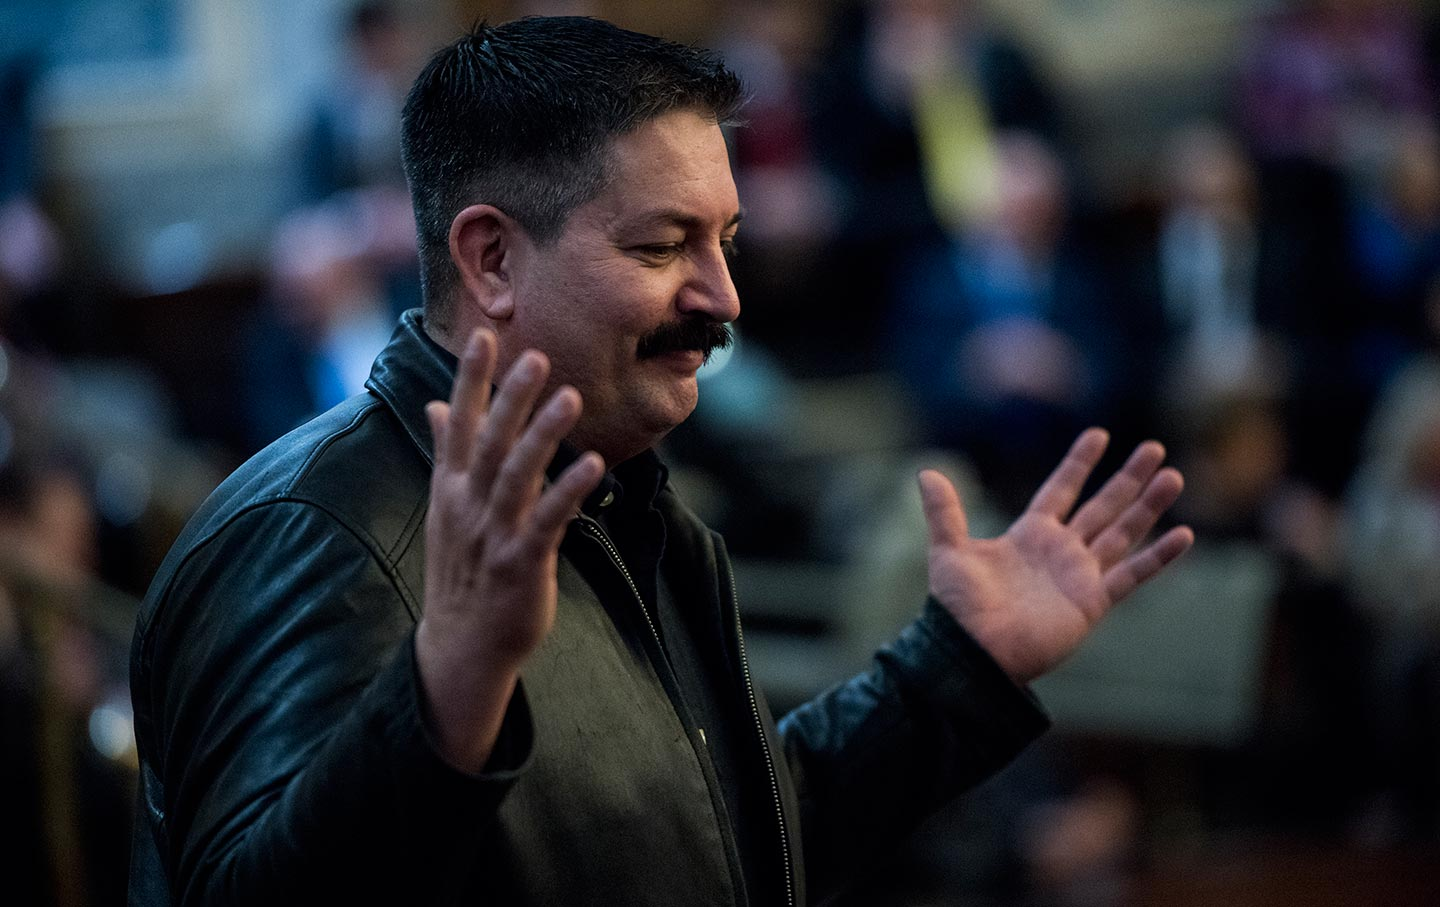 Randy Bryce at the State of the Union address on January 30, 2018. (AP  Photo / Bill Clark)